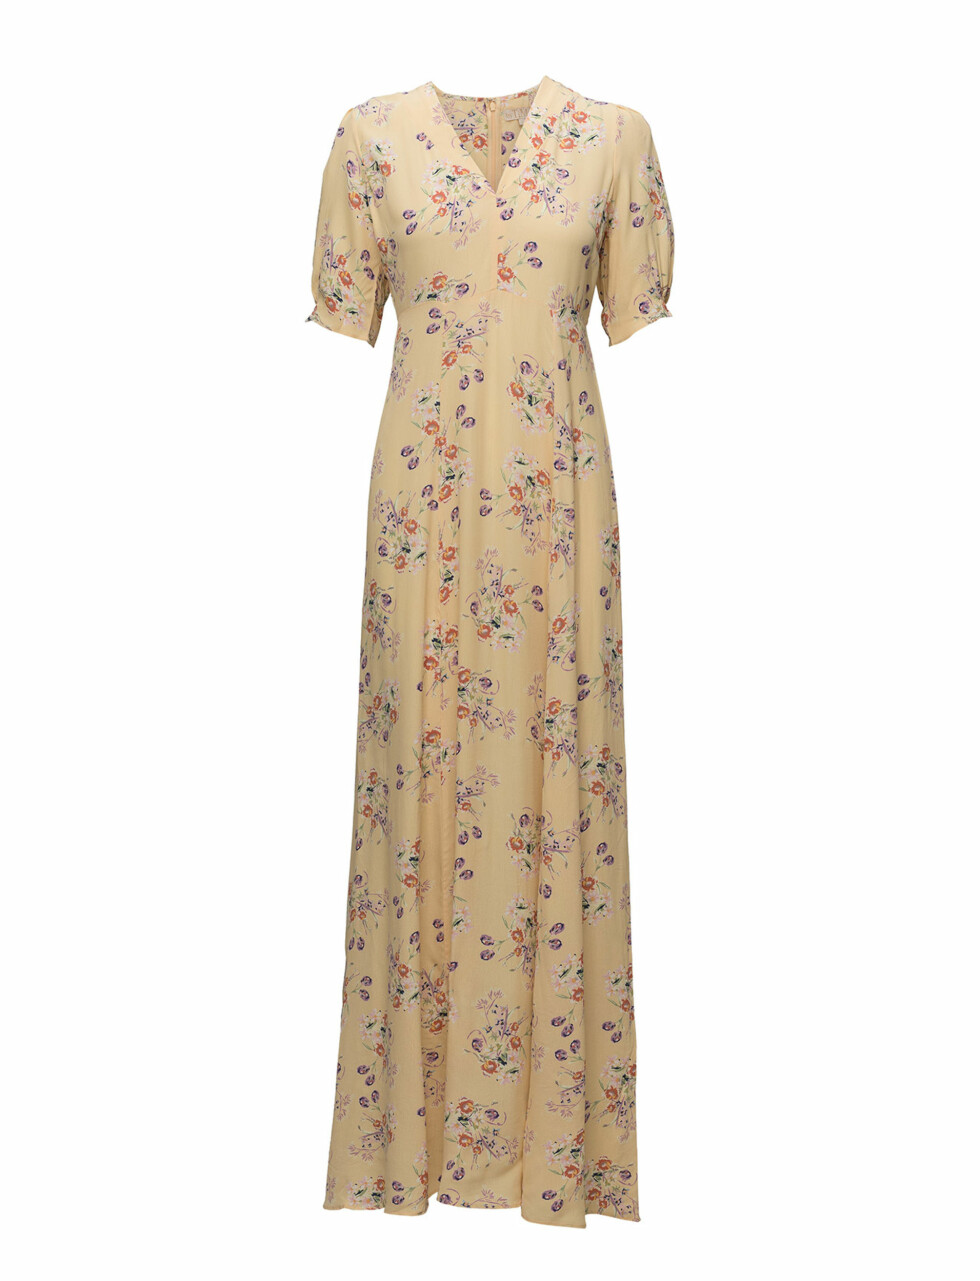 Kjole fra ByTiMo |2799,-| https://www.boozt.com/se/sv/by-ti-mo/50-s-maxi-dress_17229561/17229566?navId=67378&group=listing&position=1000000